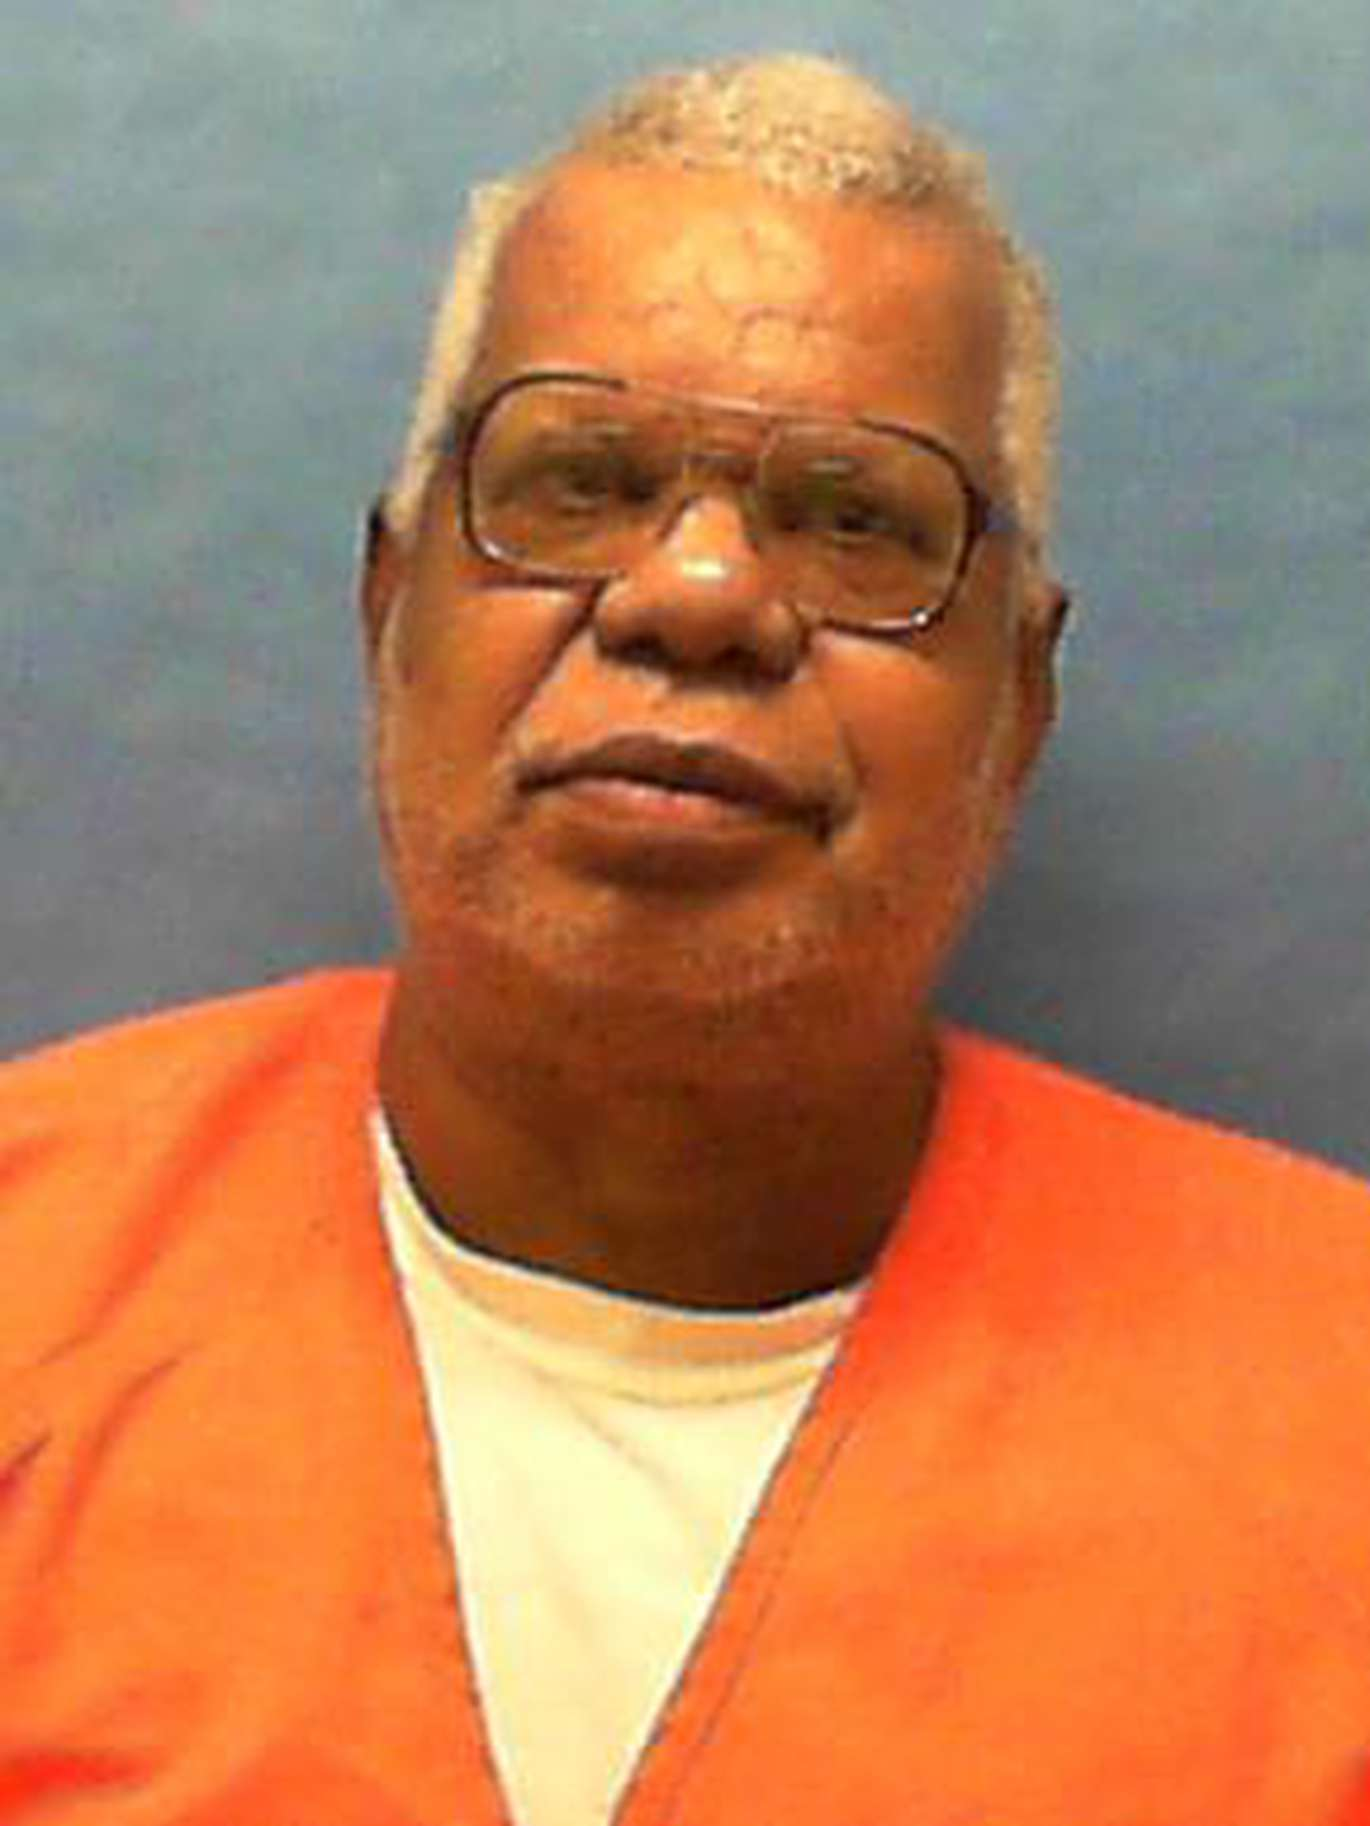 Terance Valentine was sentenced to death in 1994 for the murder of Ferdinand Porche, the husband of his ex-wife, in September 1988. He began his sentence on Halloween 1994.